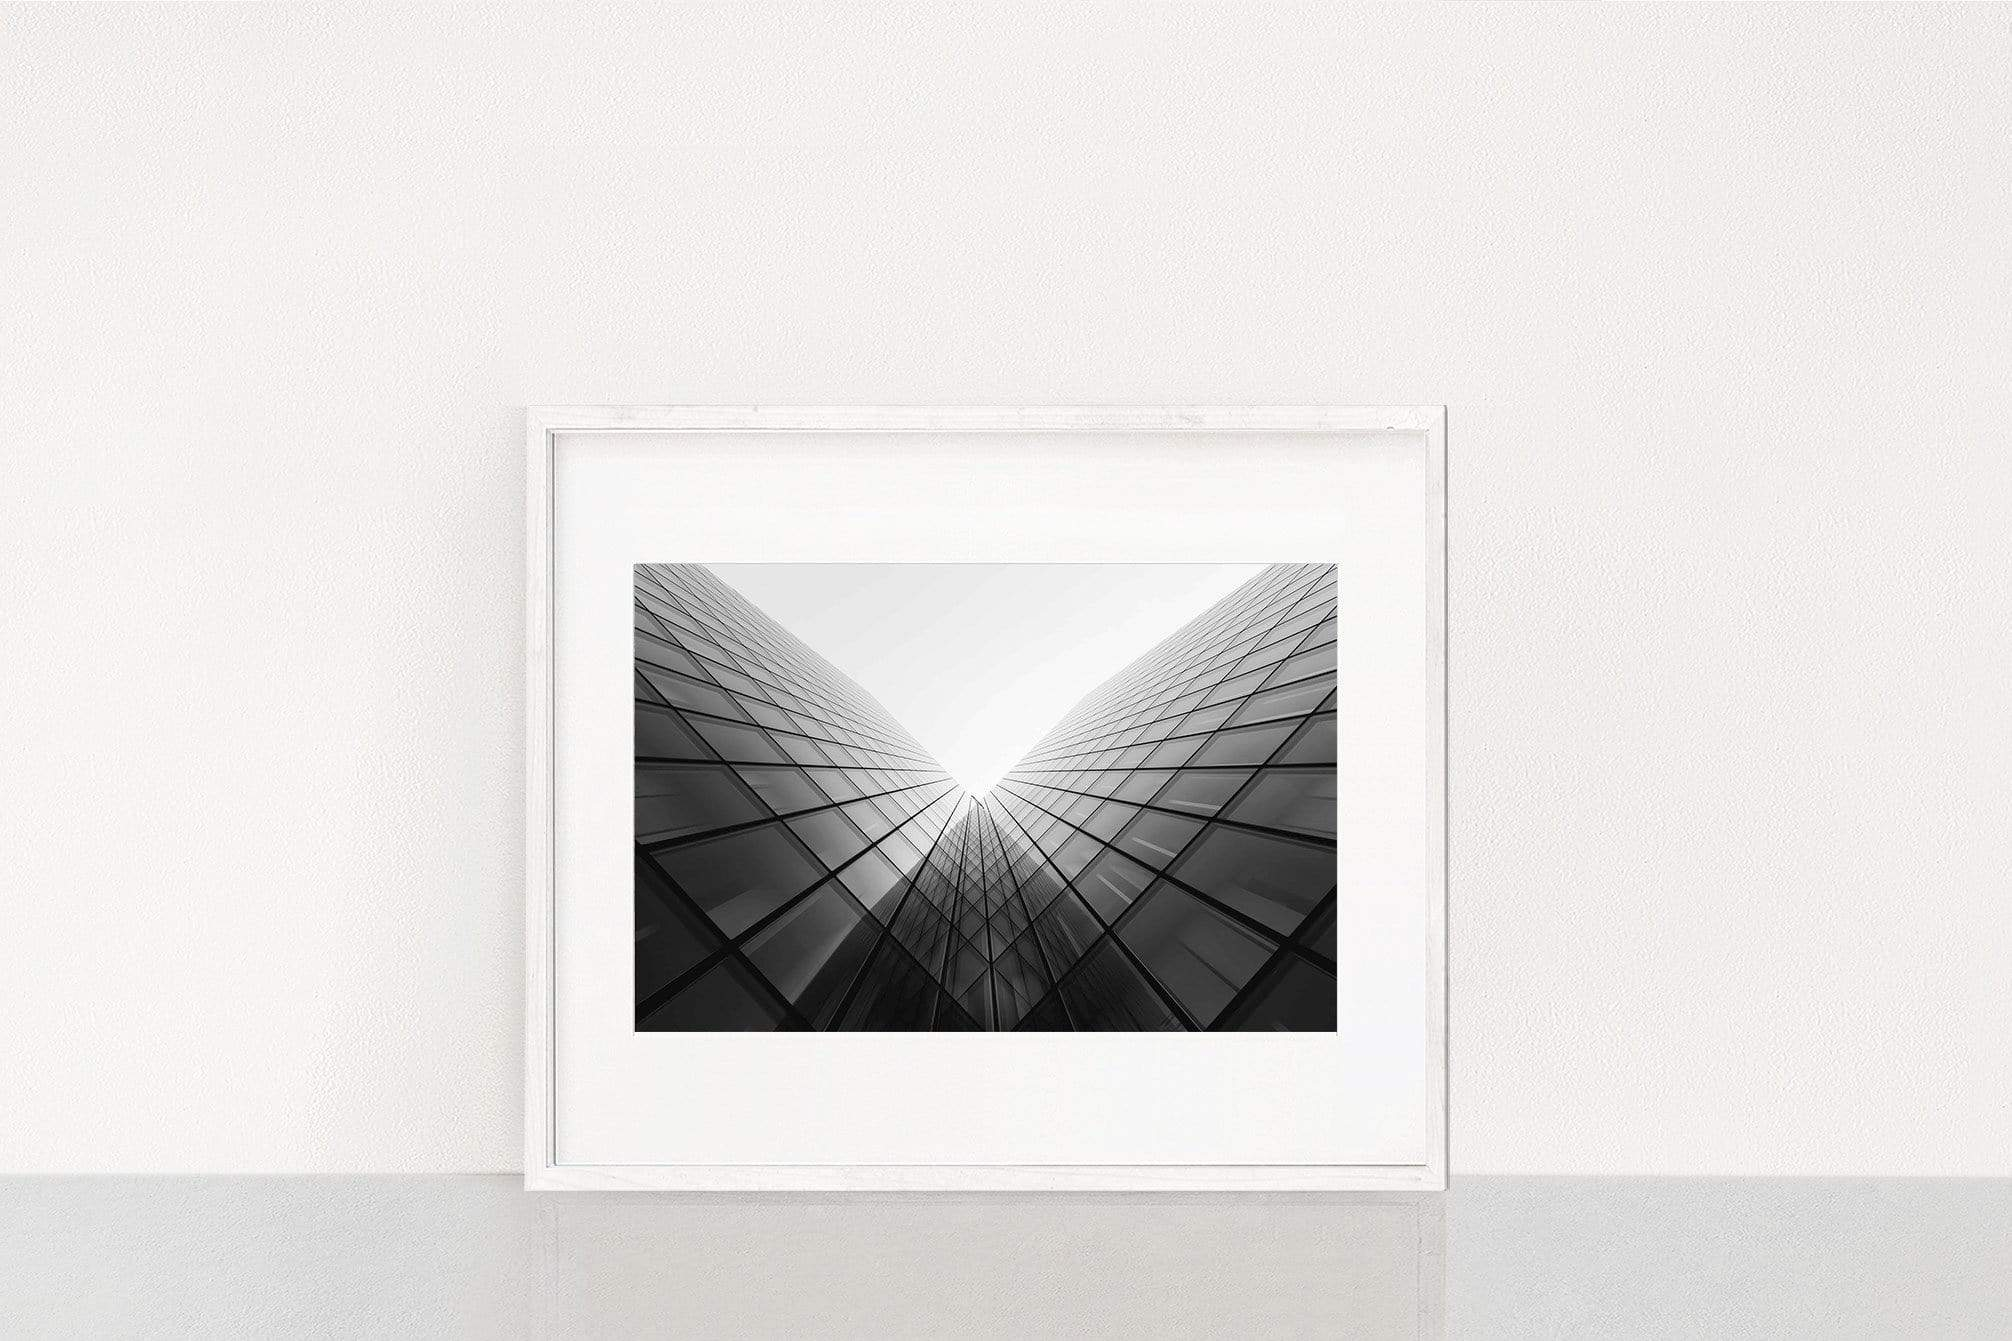 Photography Wall Art Steven U Building perspective Normal 25x38cm / White